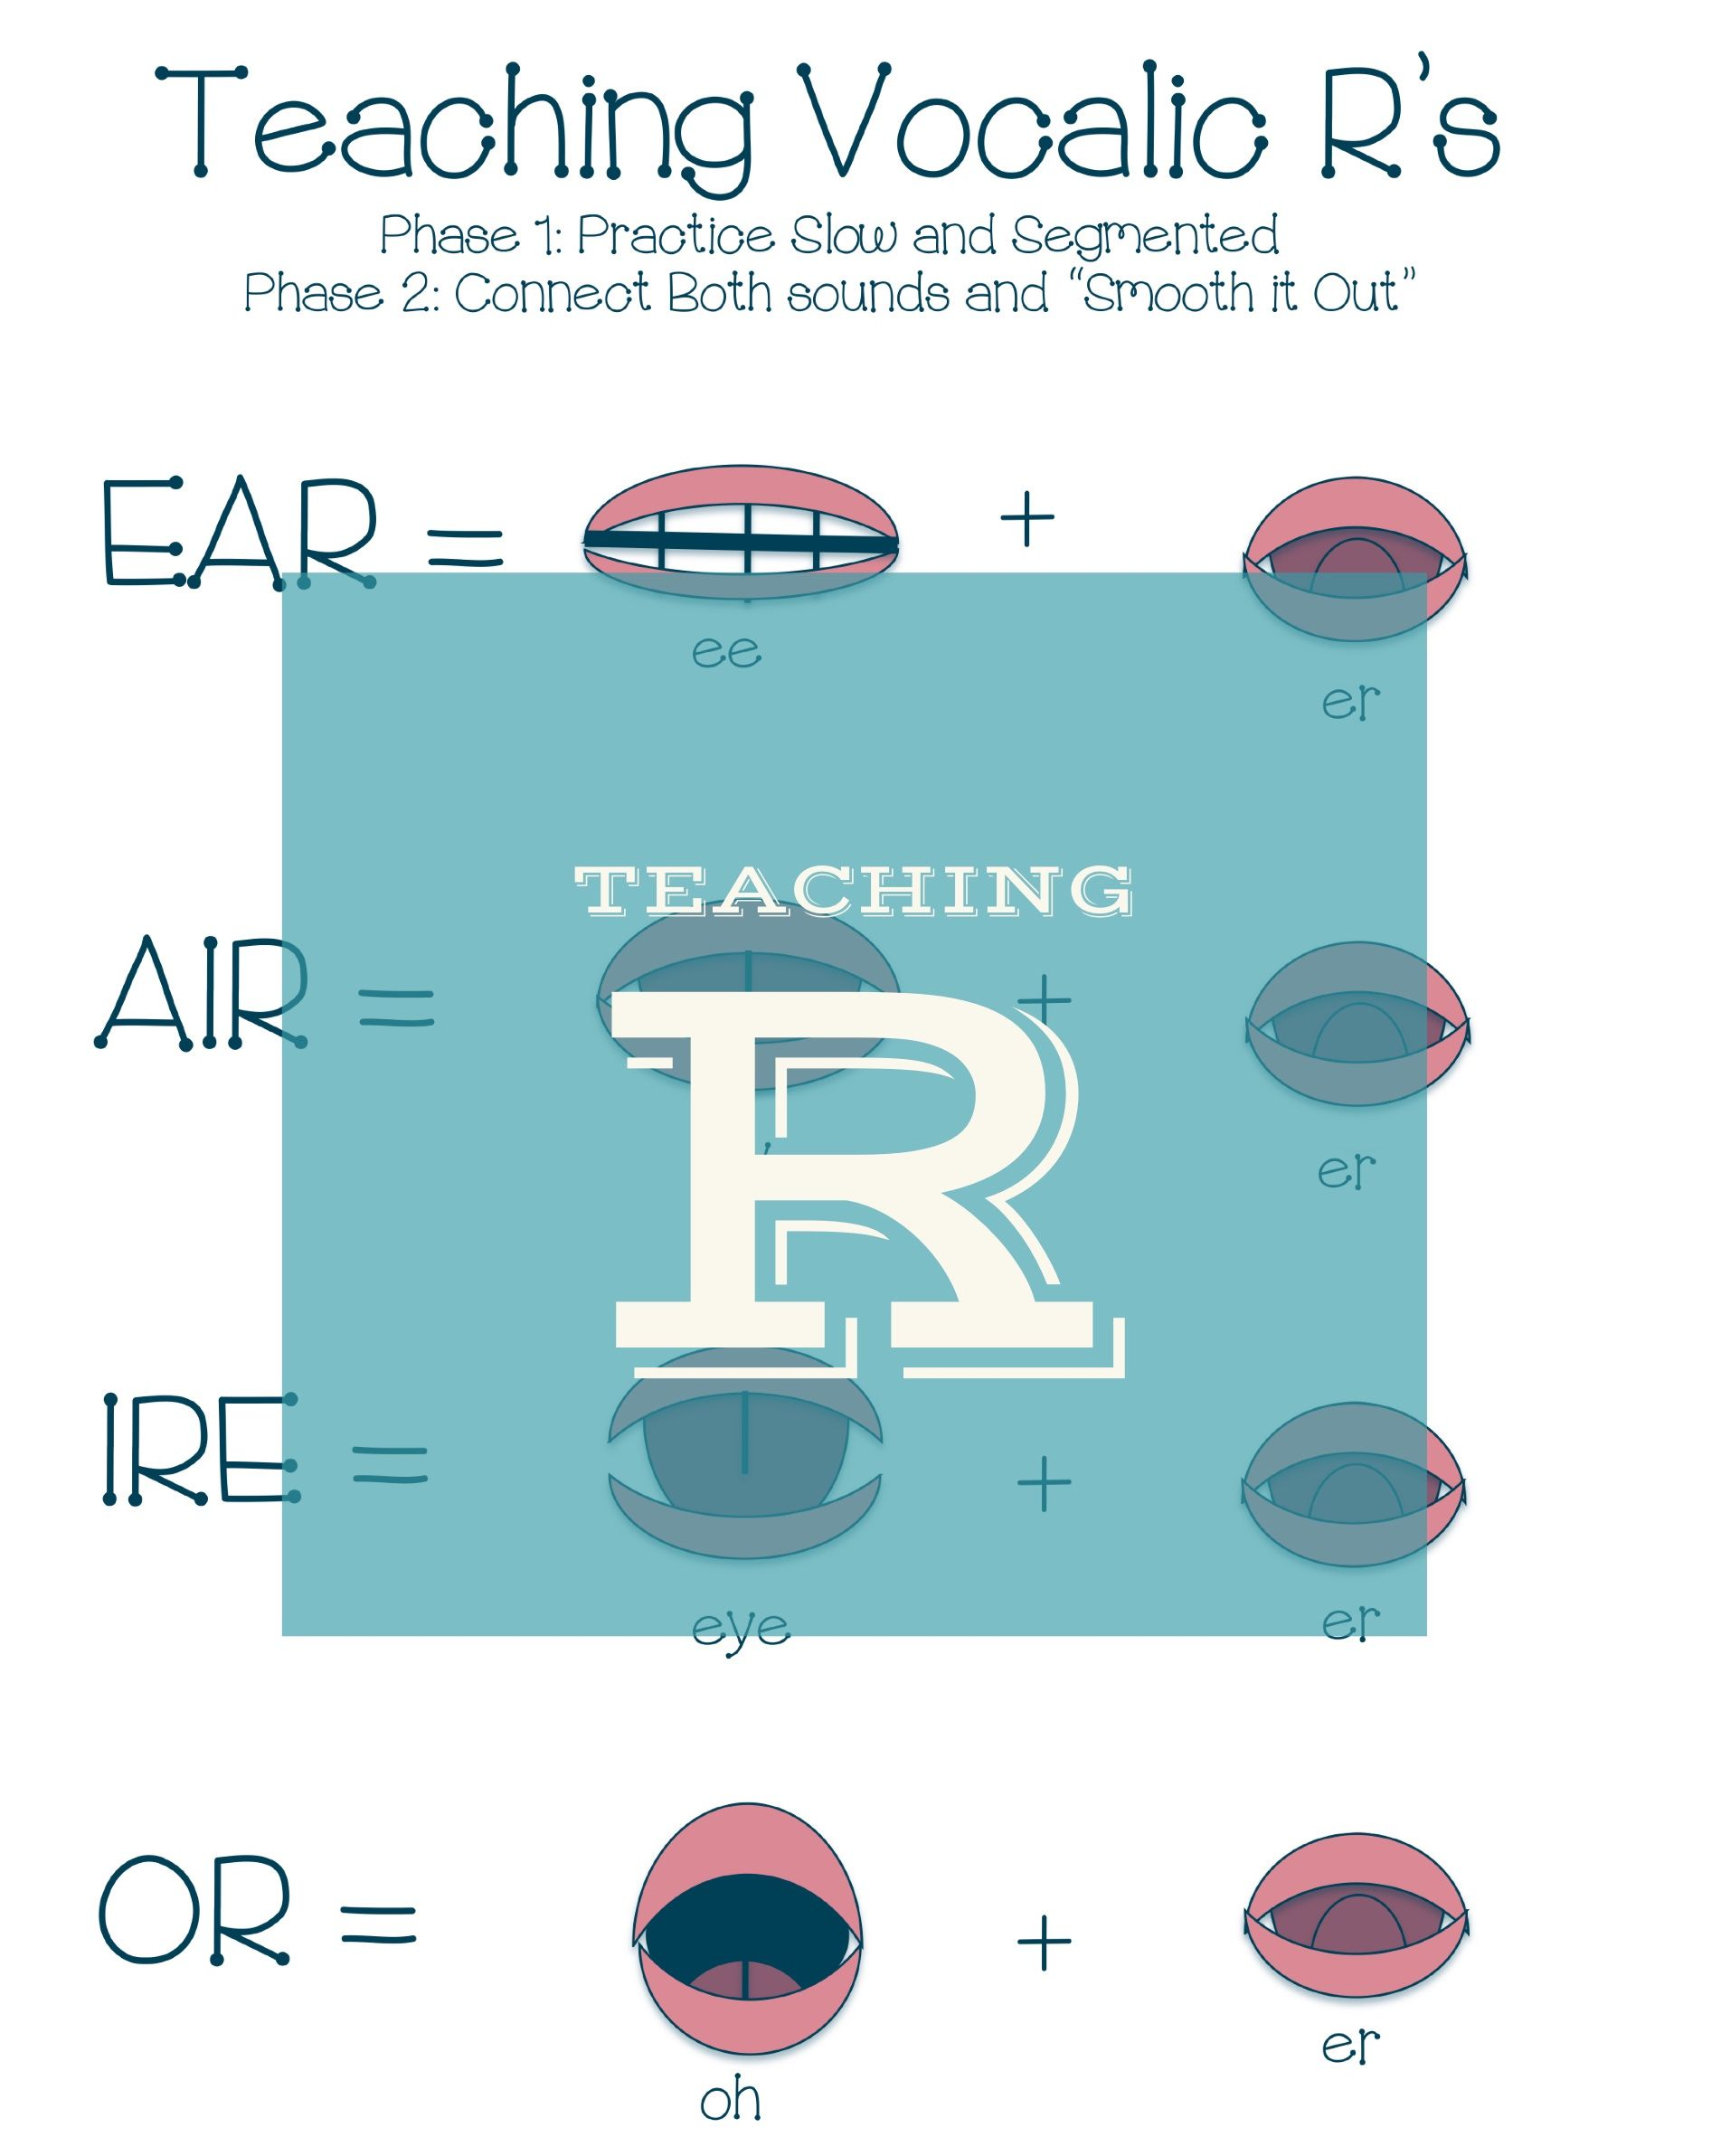 Check Out This Helpful Blog Post On How To Teach The R Sound Teaching Retroflex R Vocalic R R